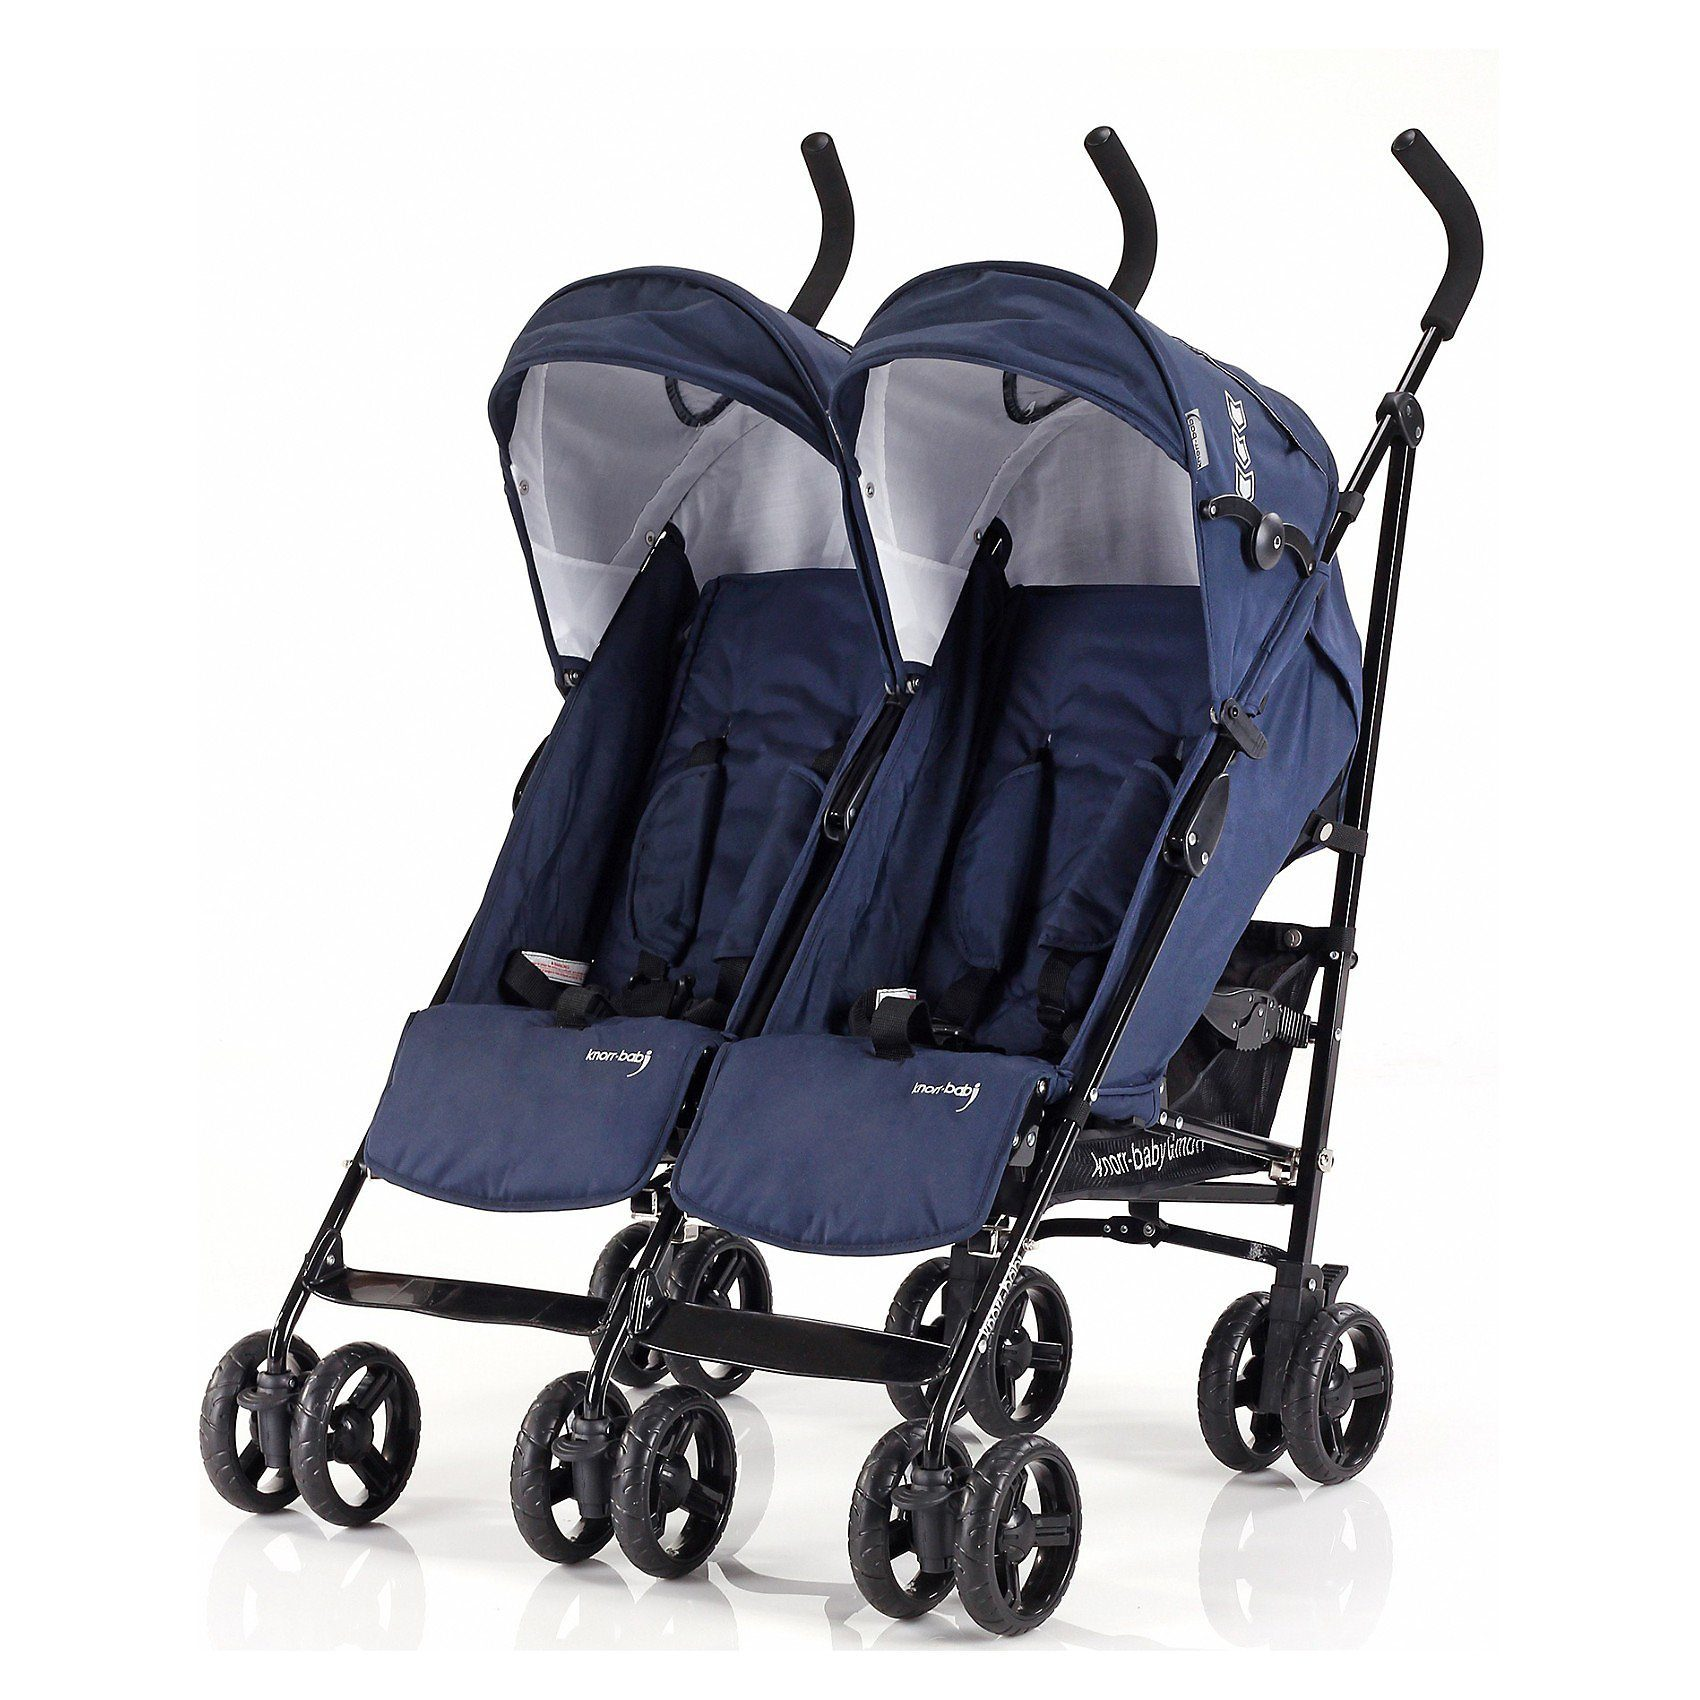 knorr-baby Zwillingsbuggy Side by Side, navy blue